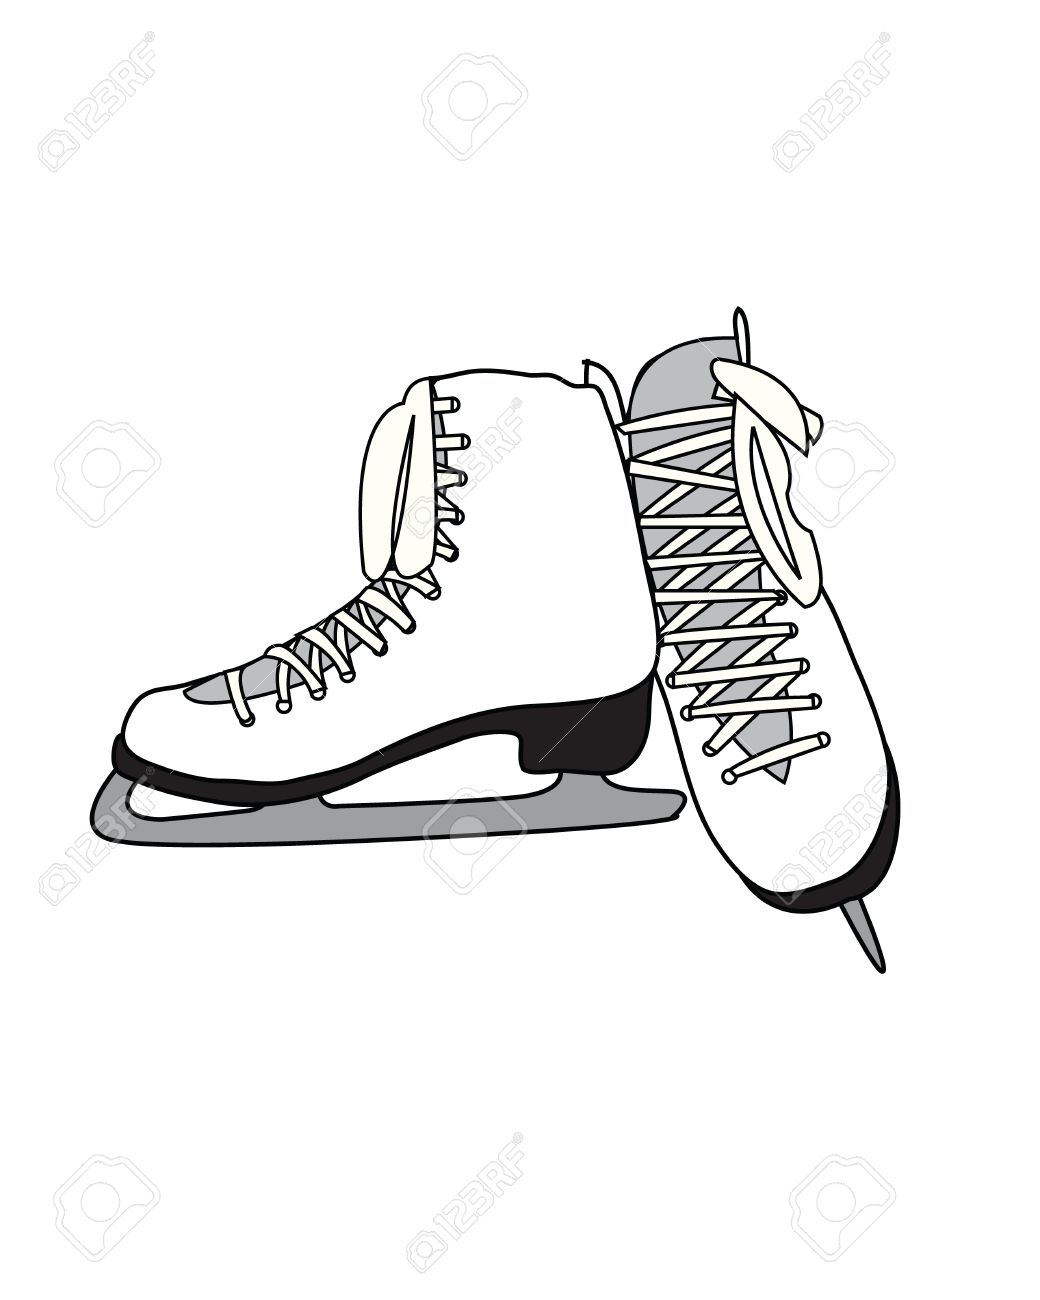 1040x1300 White Pair Of Figure Skates Royalty Free Cliparts, Vectors,